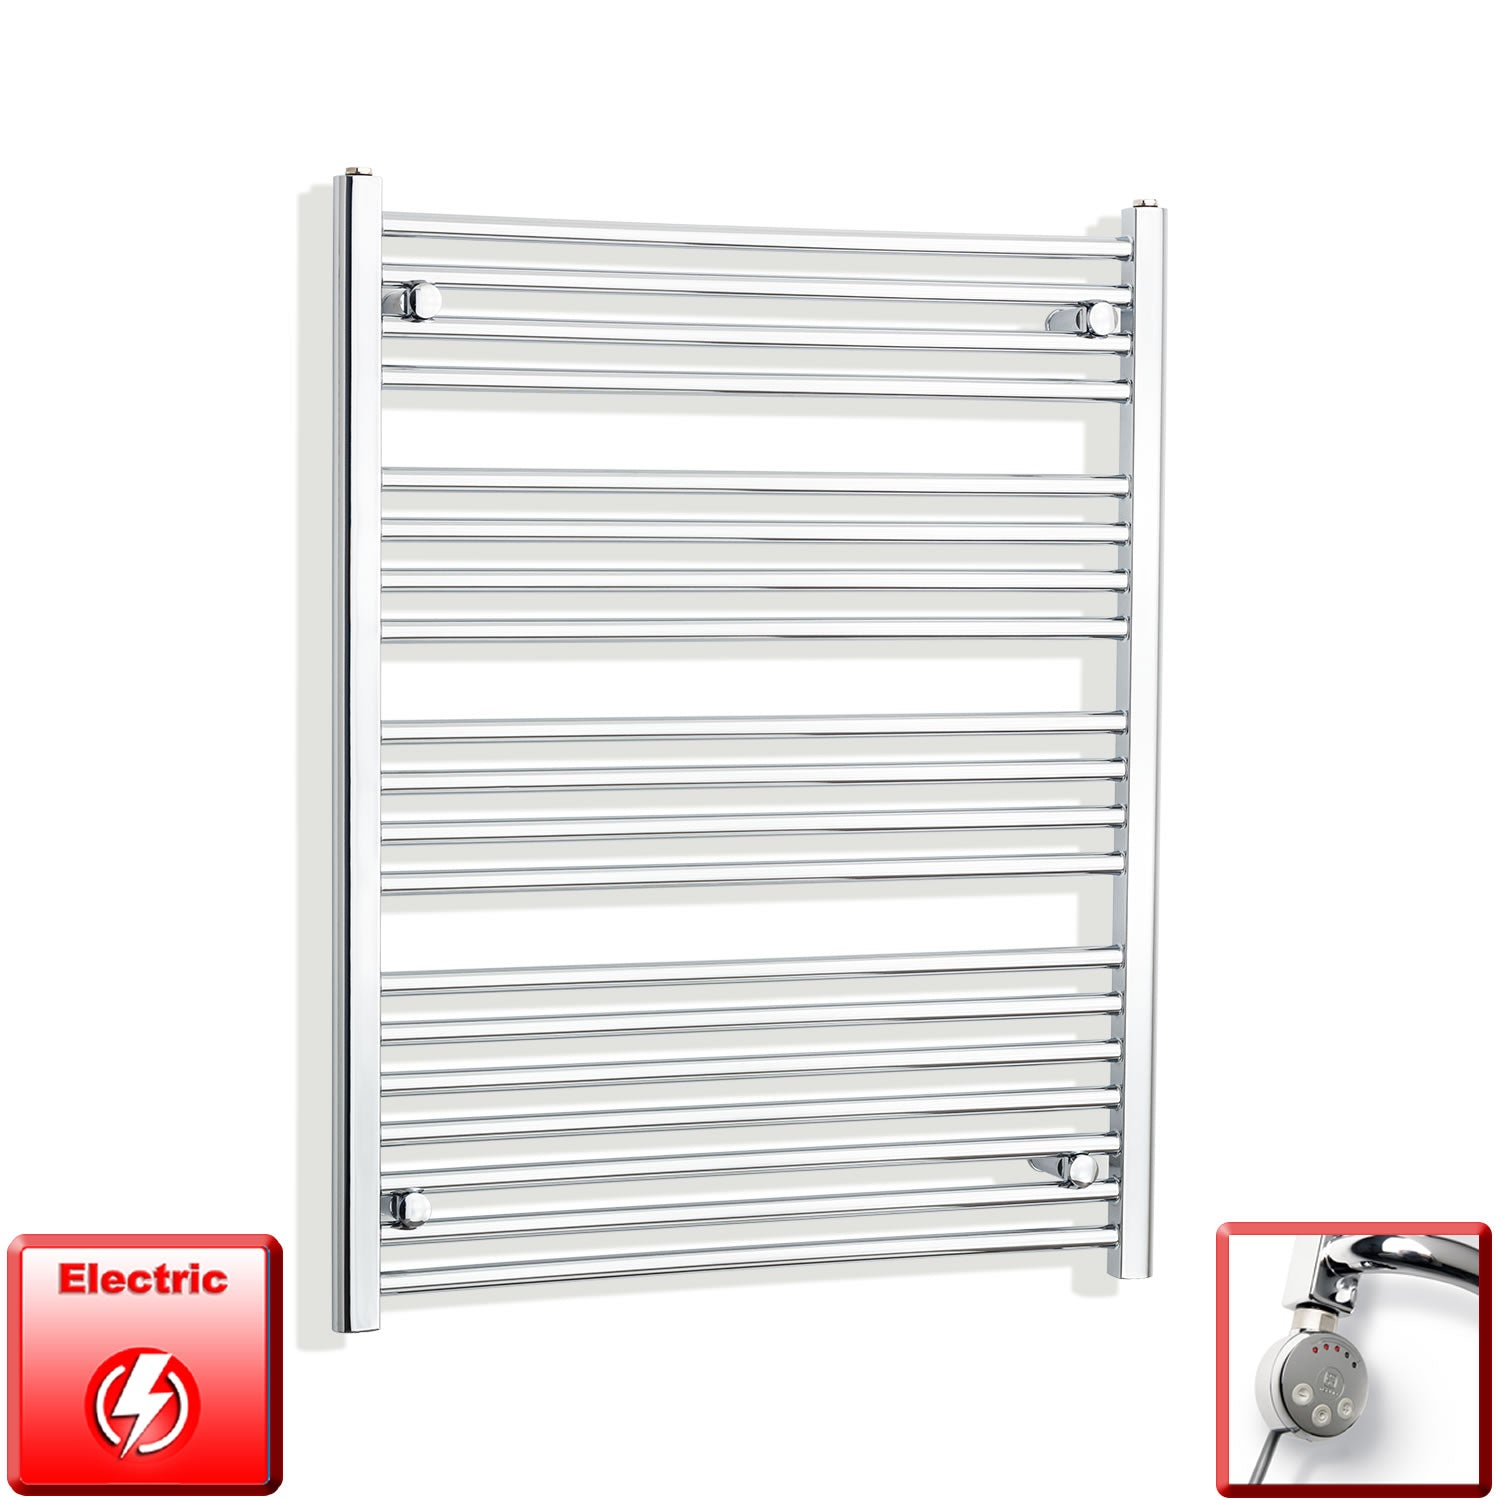 800mm Wide 1000mm High Pre-Filled Chrome Electric Towel Rail Radiator With Thermostatic MEG Element